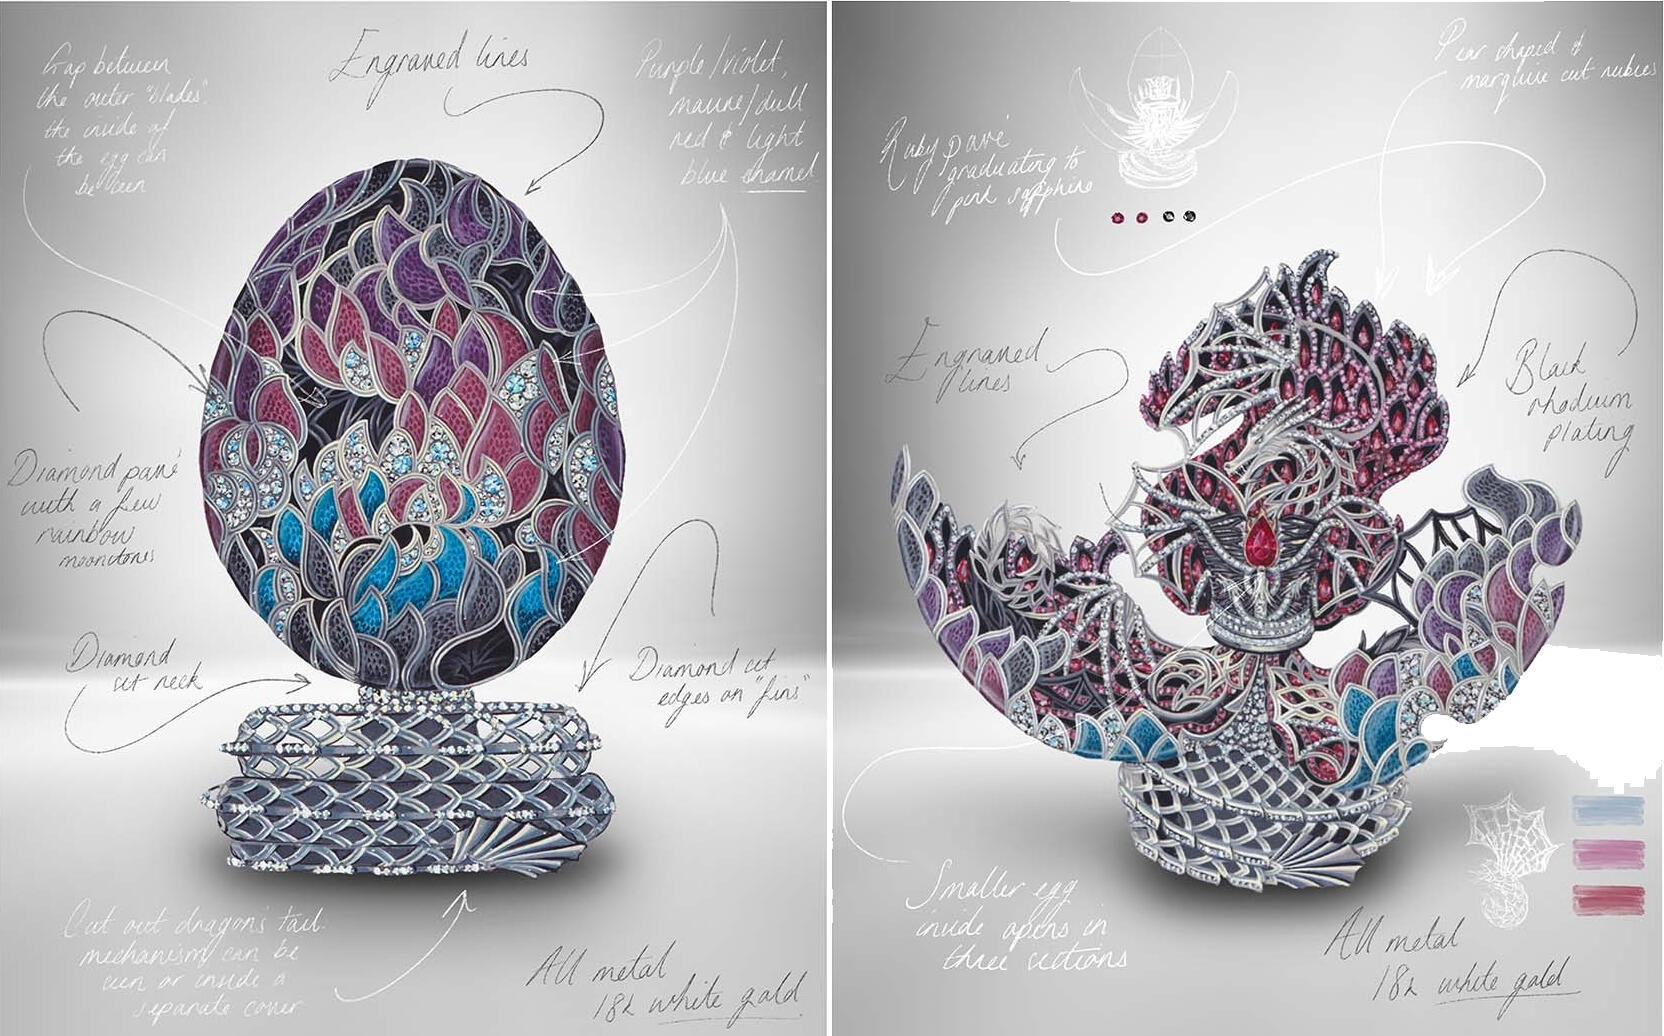 faberge-game-thrones-dragon-egg-open-and-closed